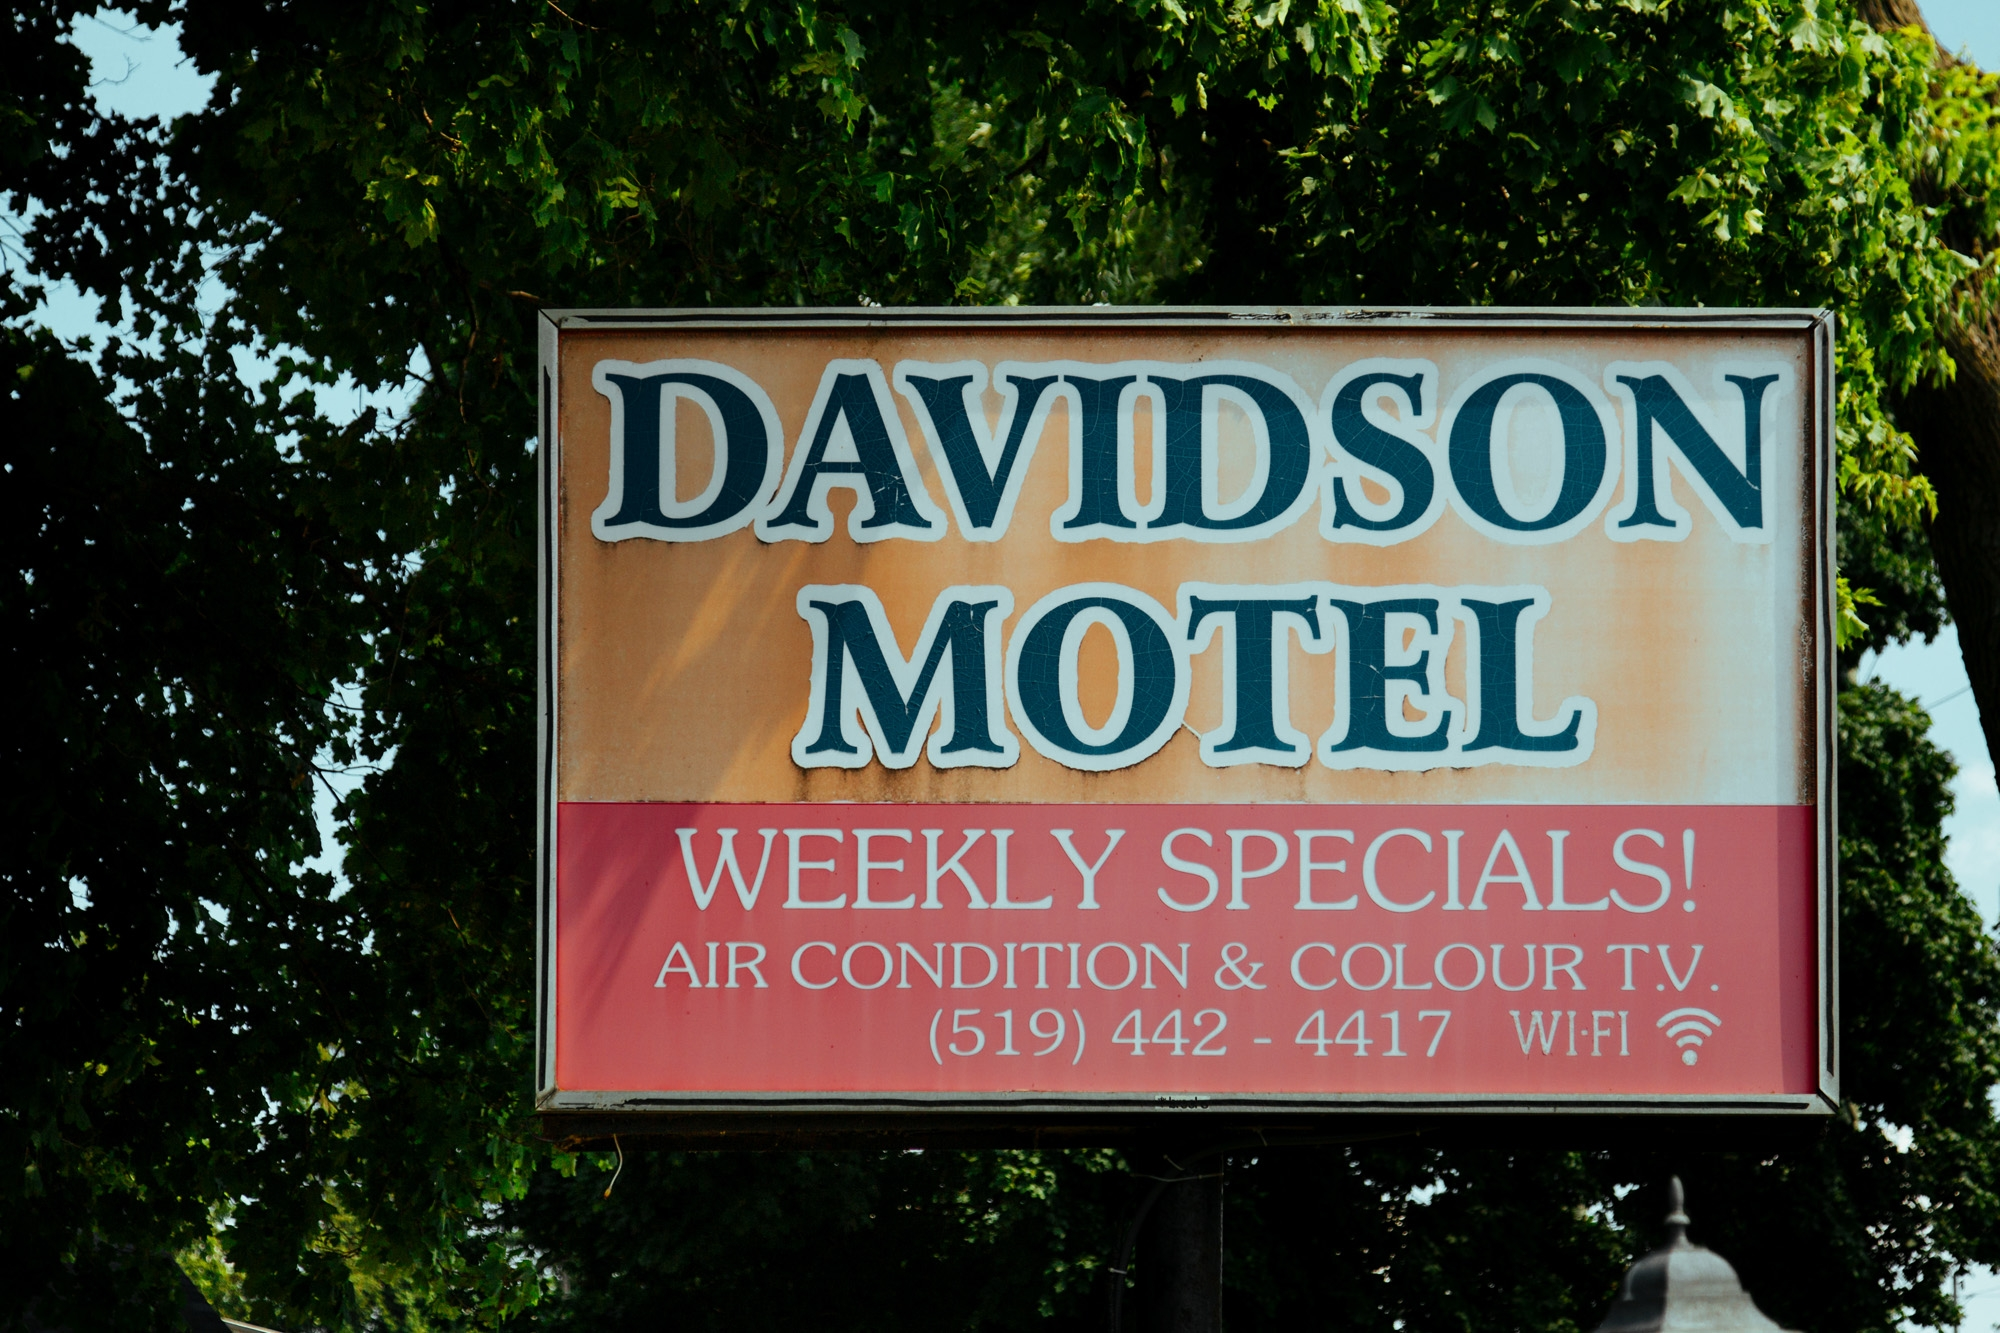 The remaining Davidson Motel sign